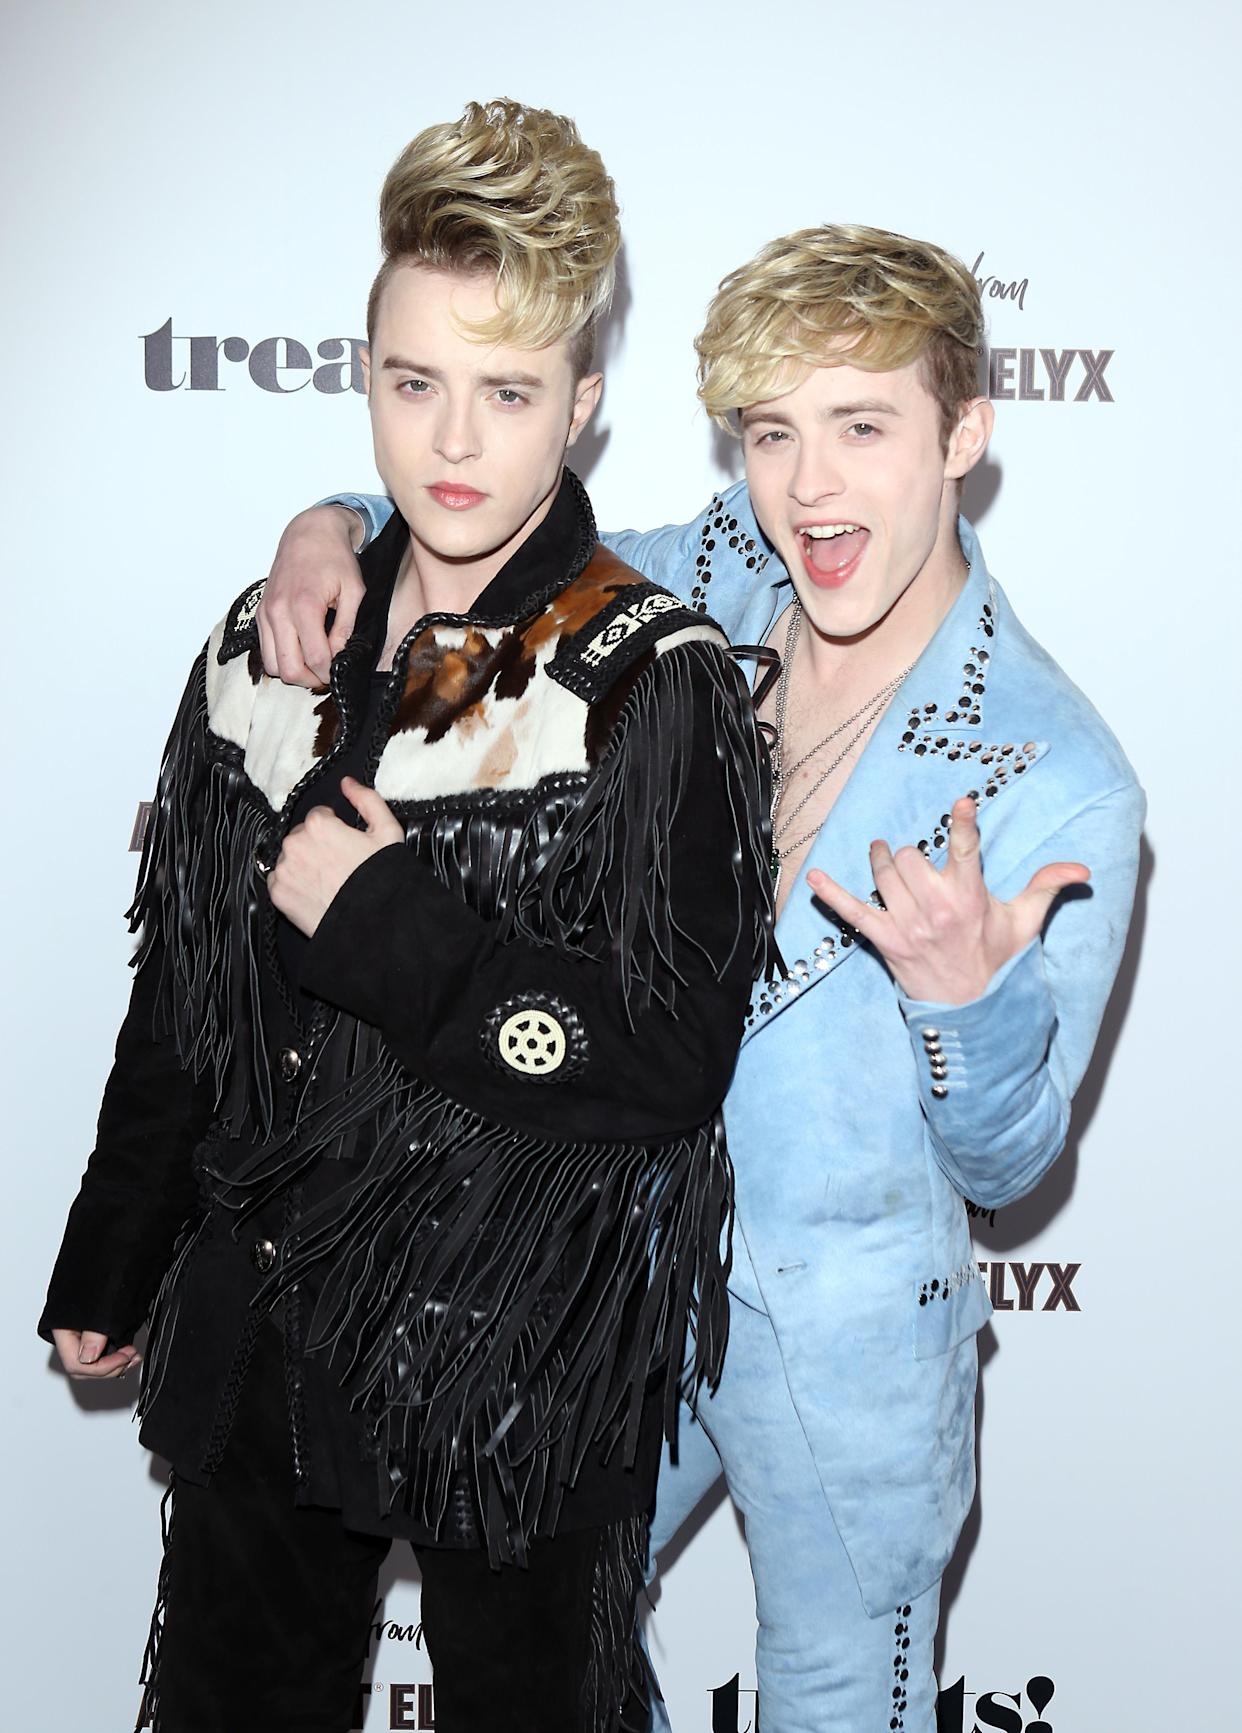 LOS ANGELES, CALIFORNIA - OCTOBER 31: John Grimes and Edward Grimes aka Jedward twins attend the Trick Or treats! Halloween Party held at No Vacancy on October 31, 2019 in Los Angeles, California. (Photo by Michael Tran/Getty Images)